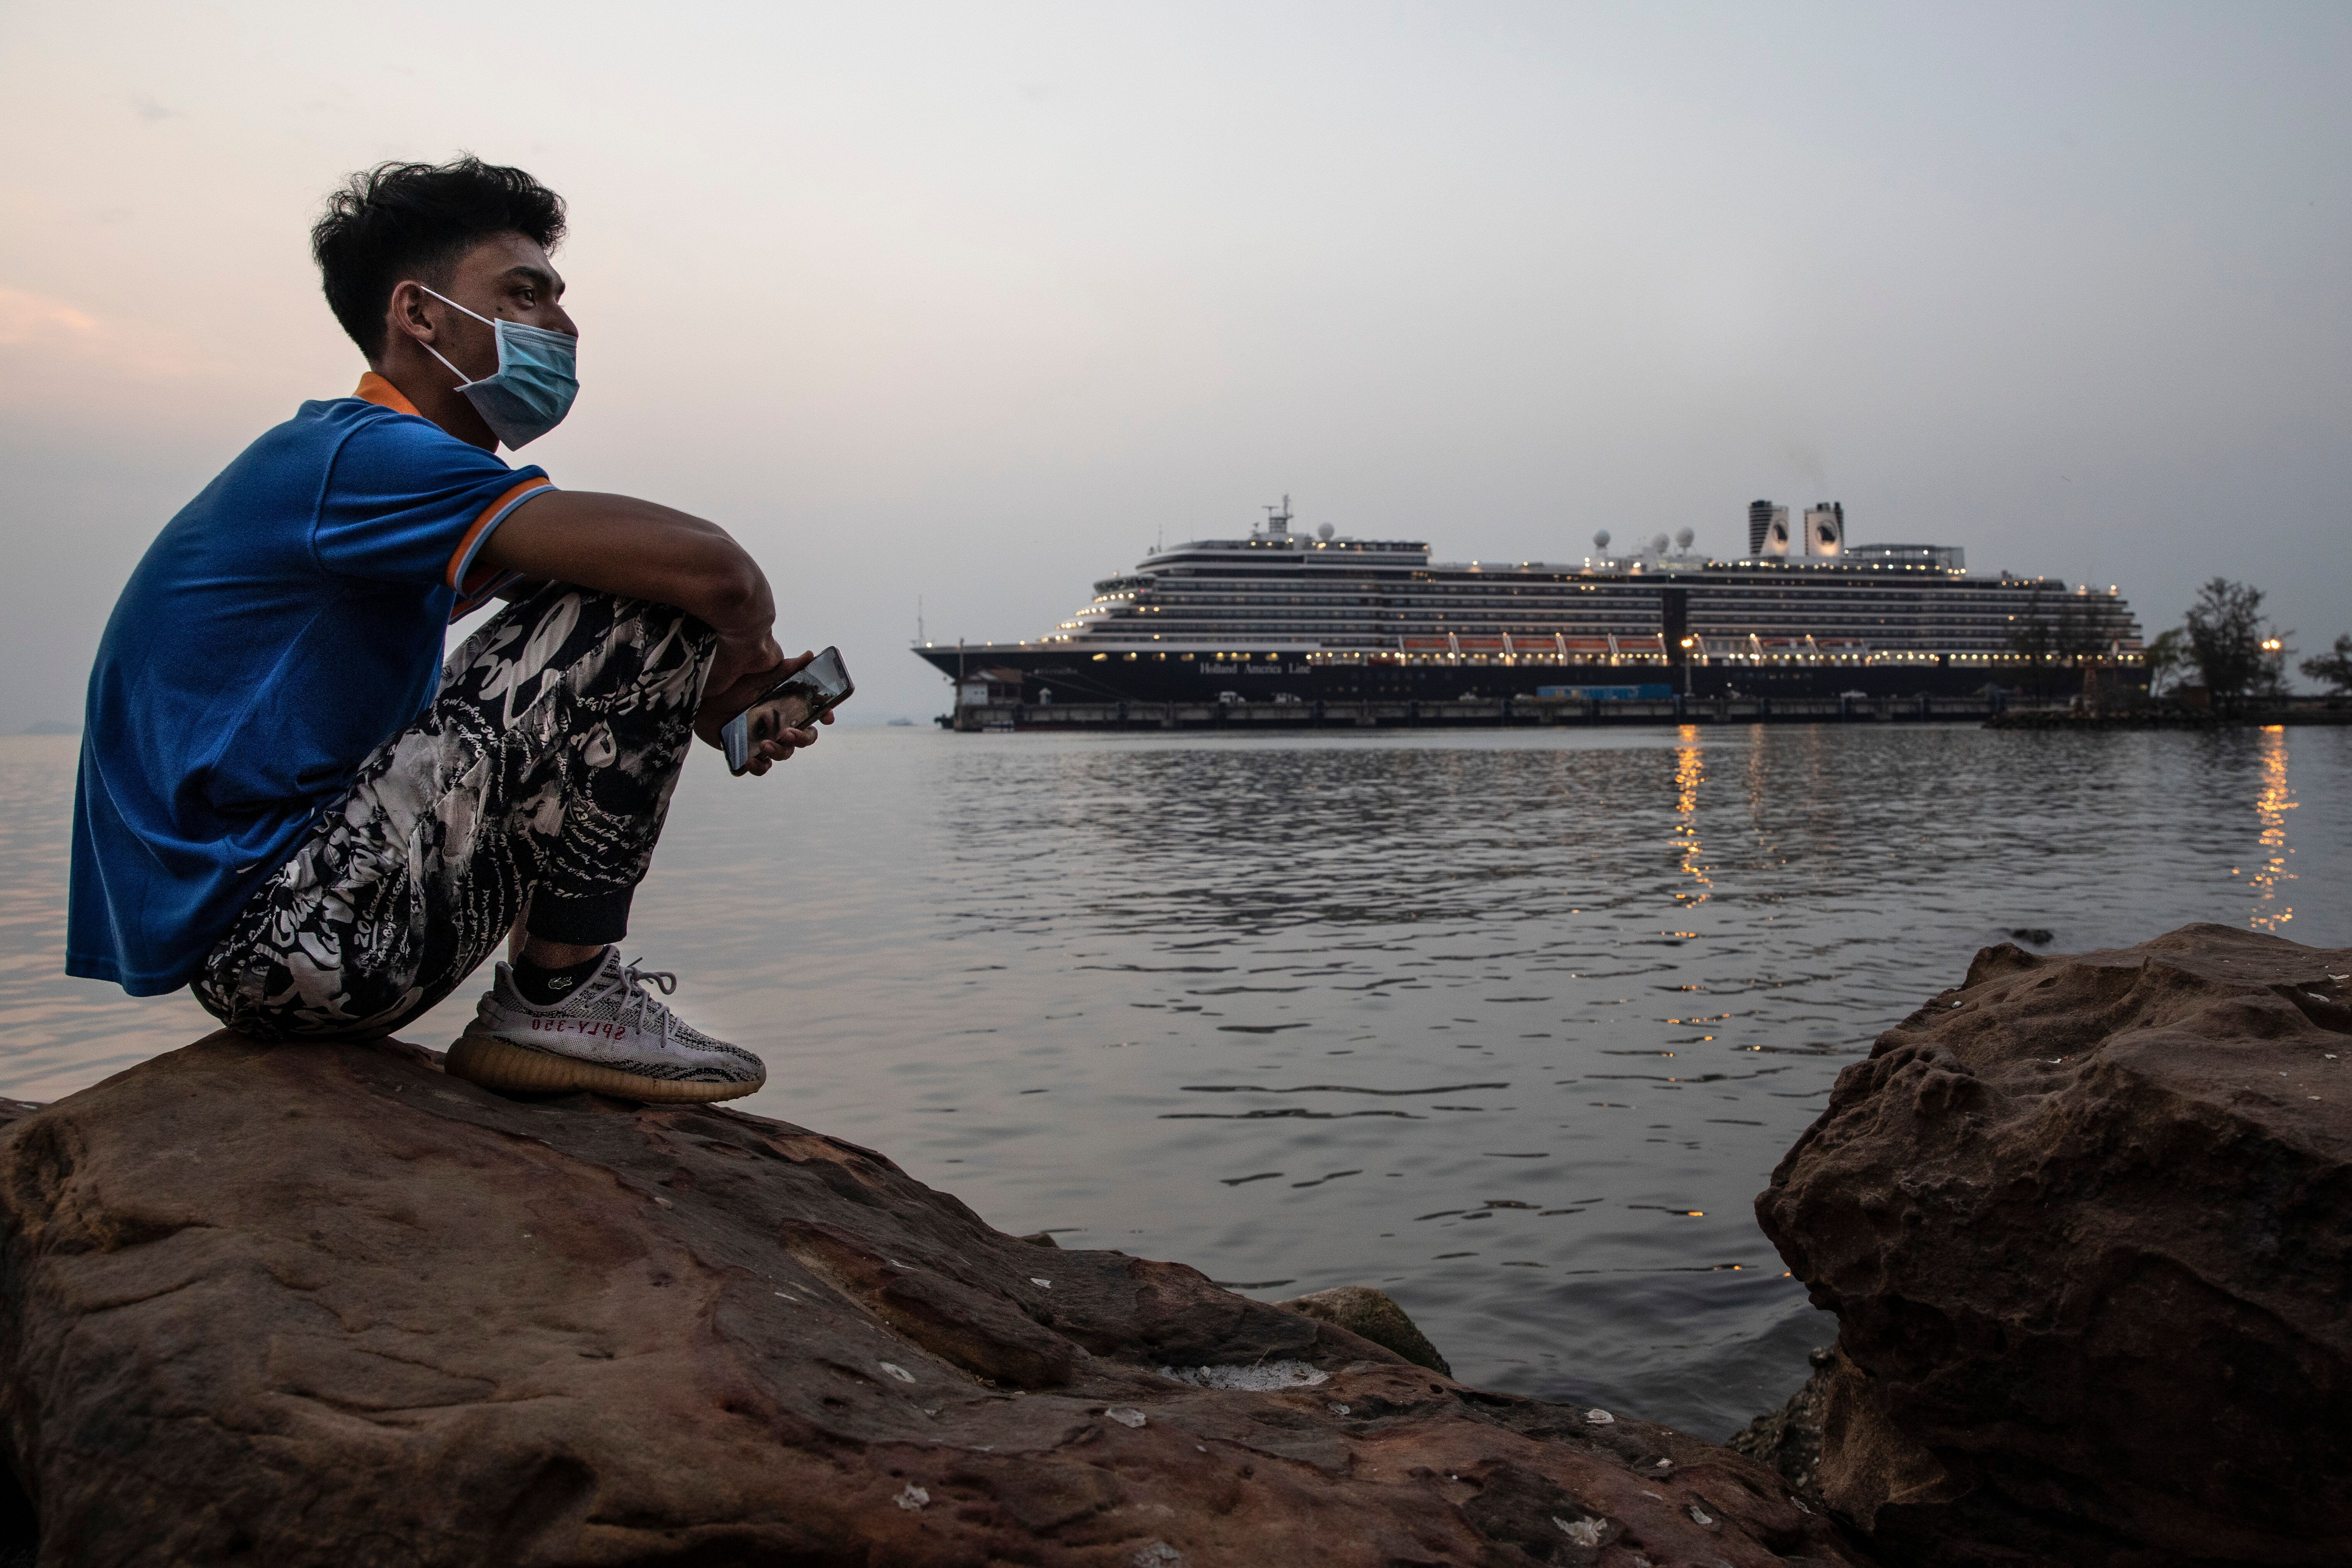 A Cambodian man sits by the ocean near the docked MS Westerdam cruise ship in Sihanoukville, Cambodia, on Monday. The cruise